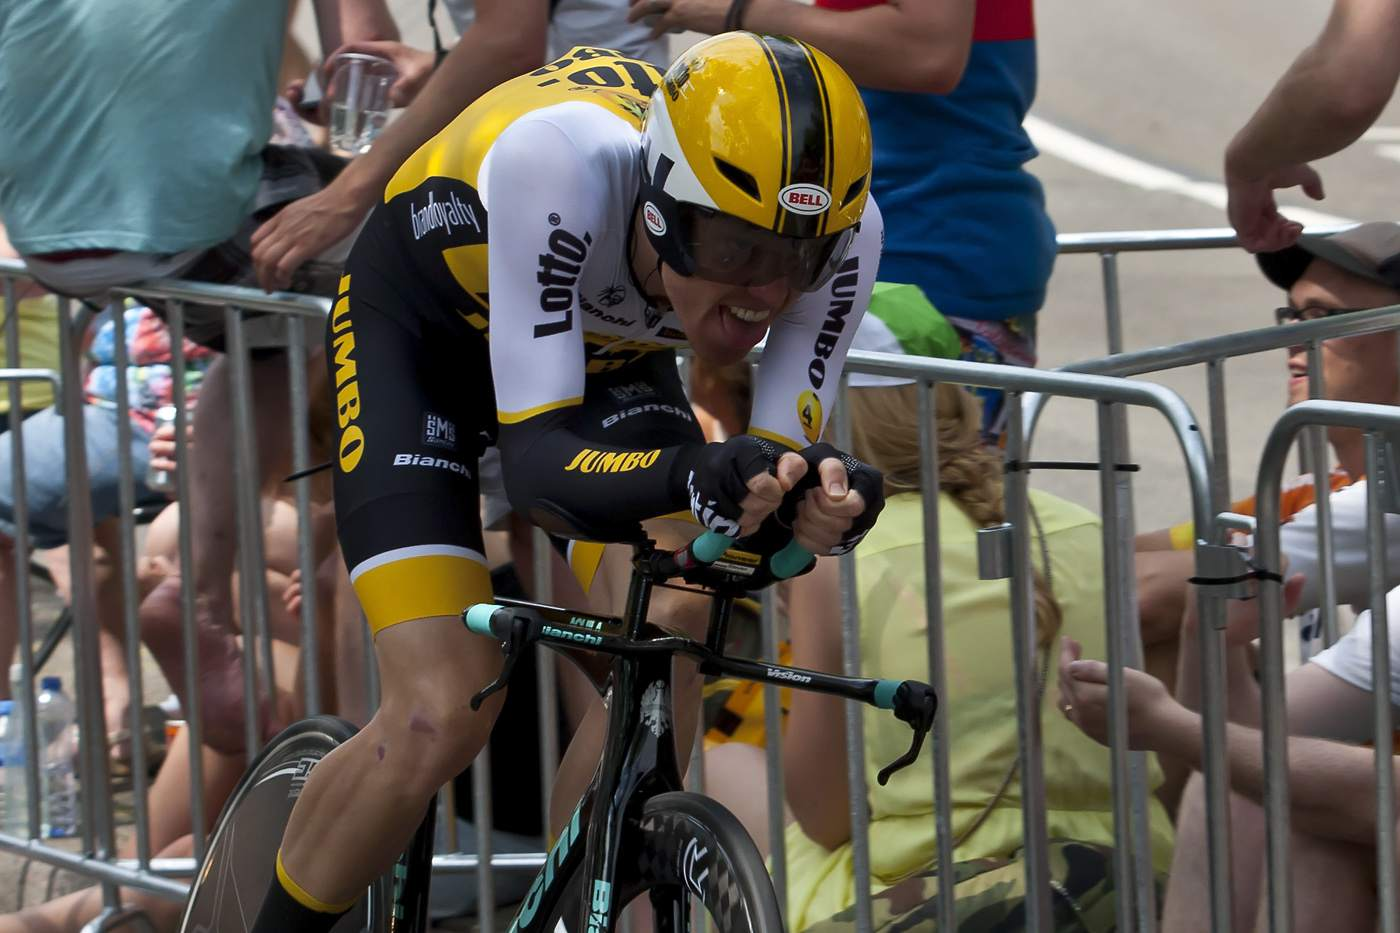 tour france 2015 pictures14 Tour de France 2015 in Pictures